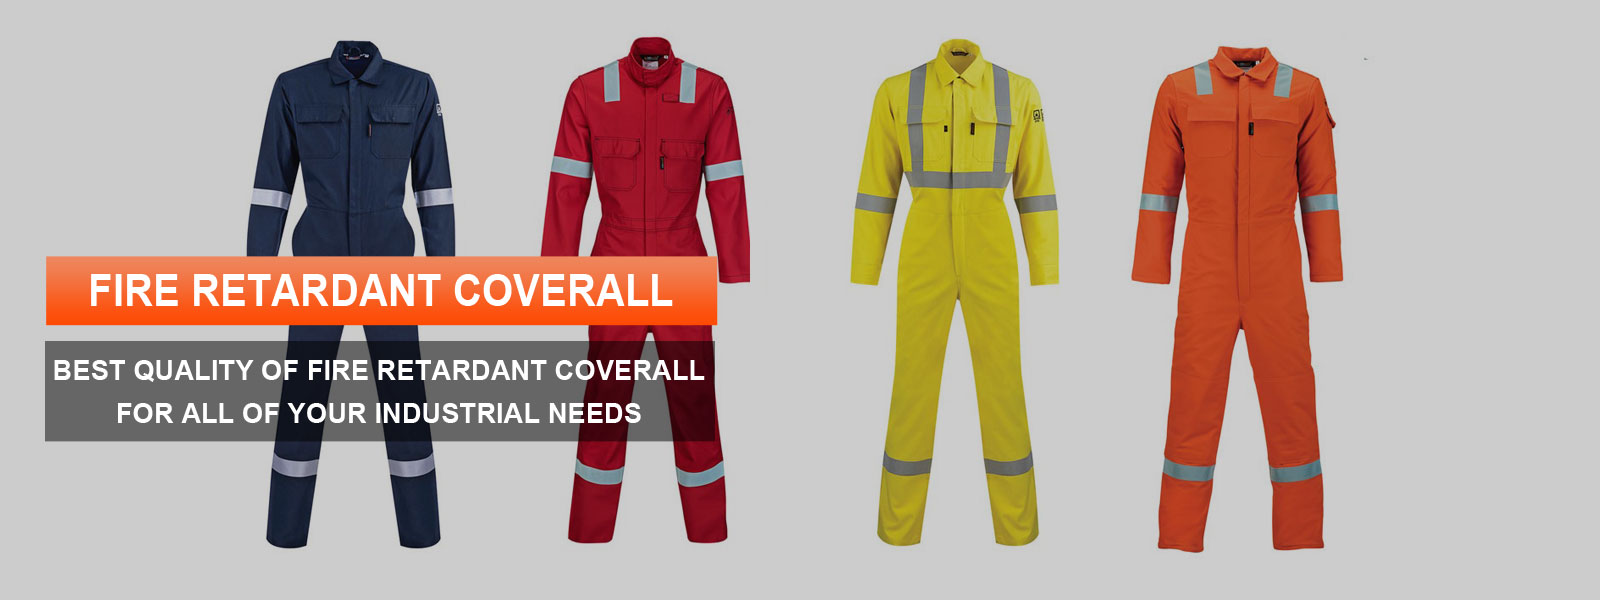 Fire Retardant Coverall Manufacturers in Zimbabwe